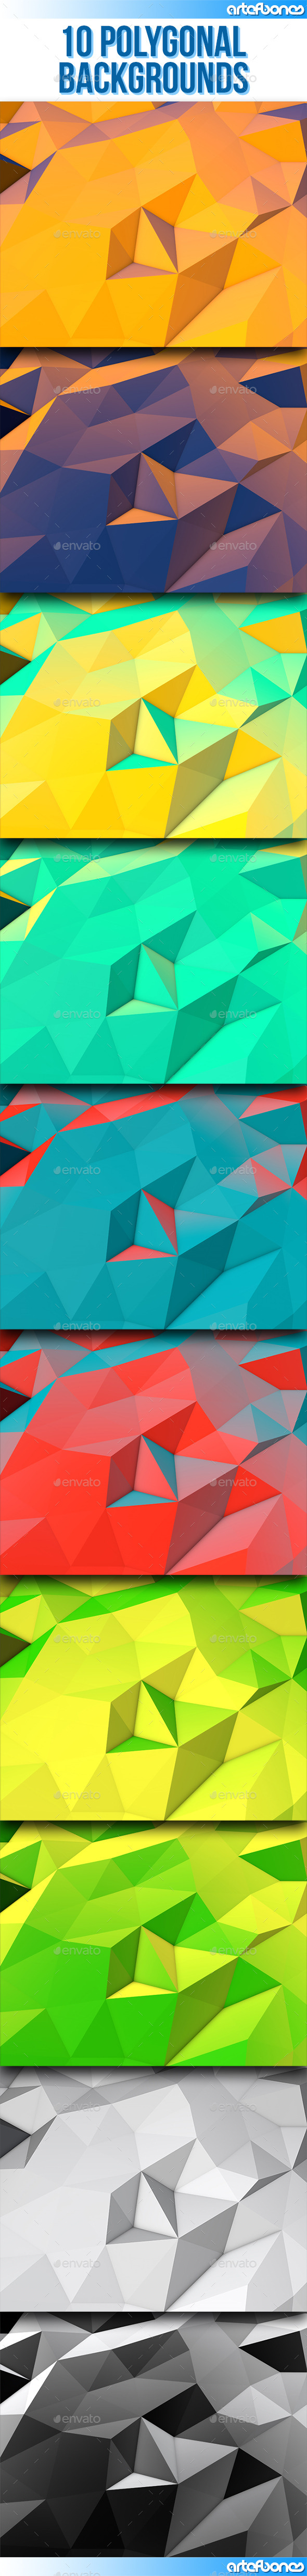 GraphicRiver 10 Polygonal Backgrounds 10759664